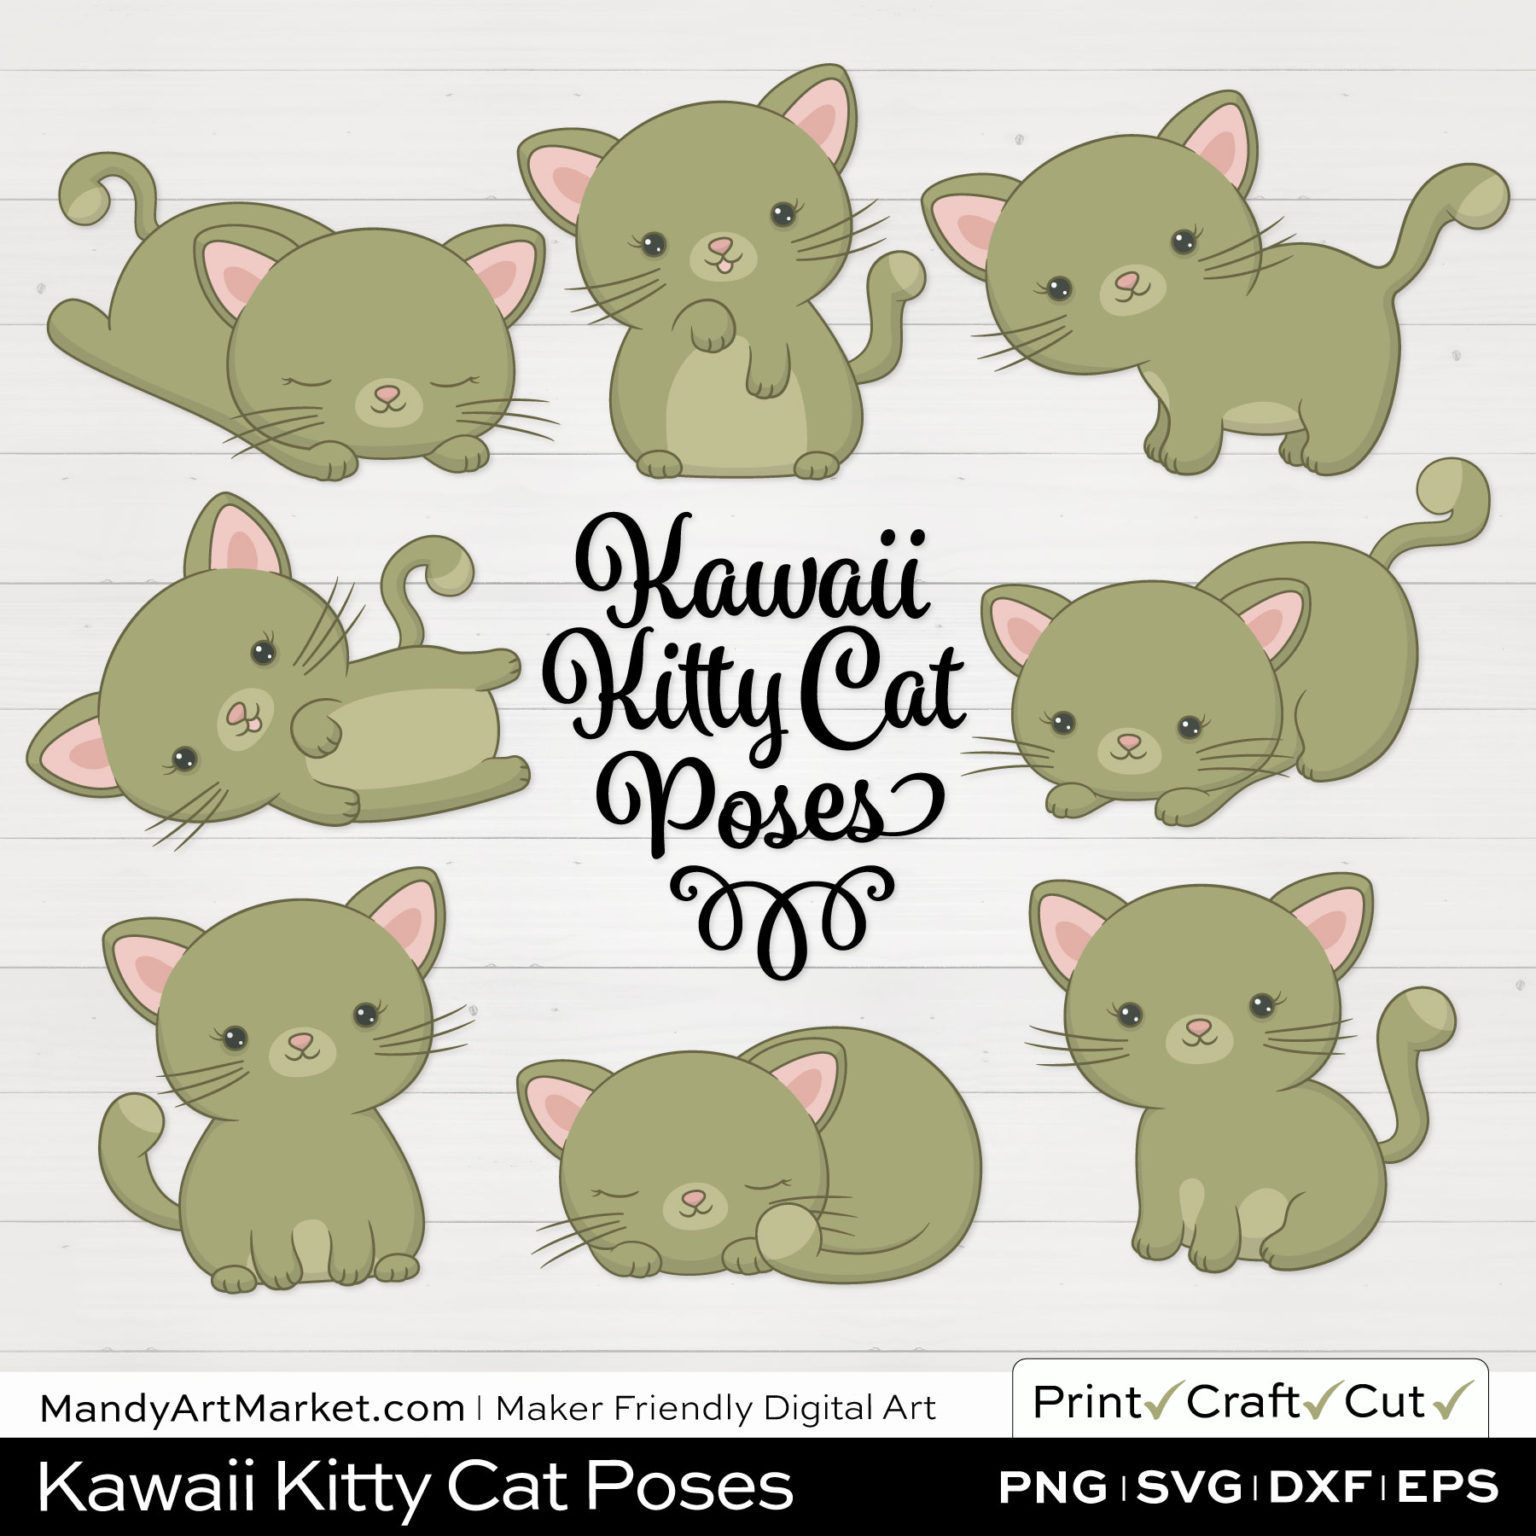 Army Green Kawaii Kitty Cat Poses Clipart on White Background